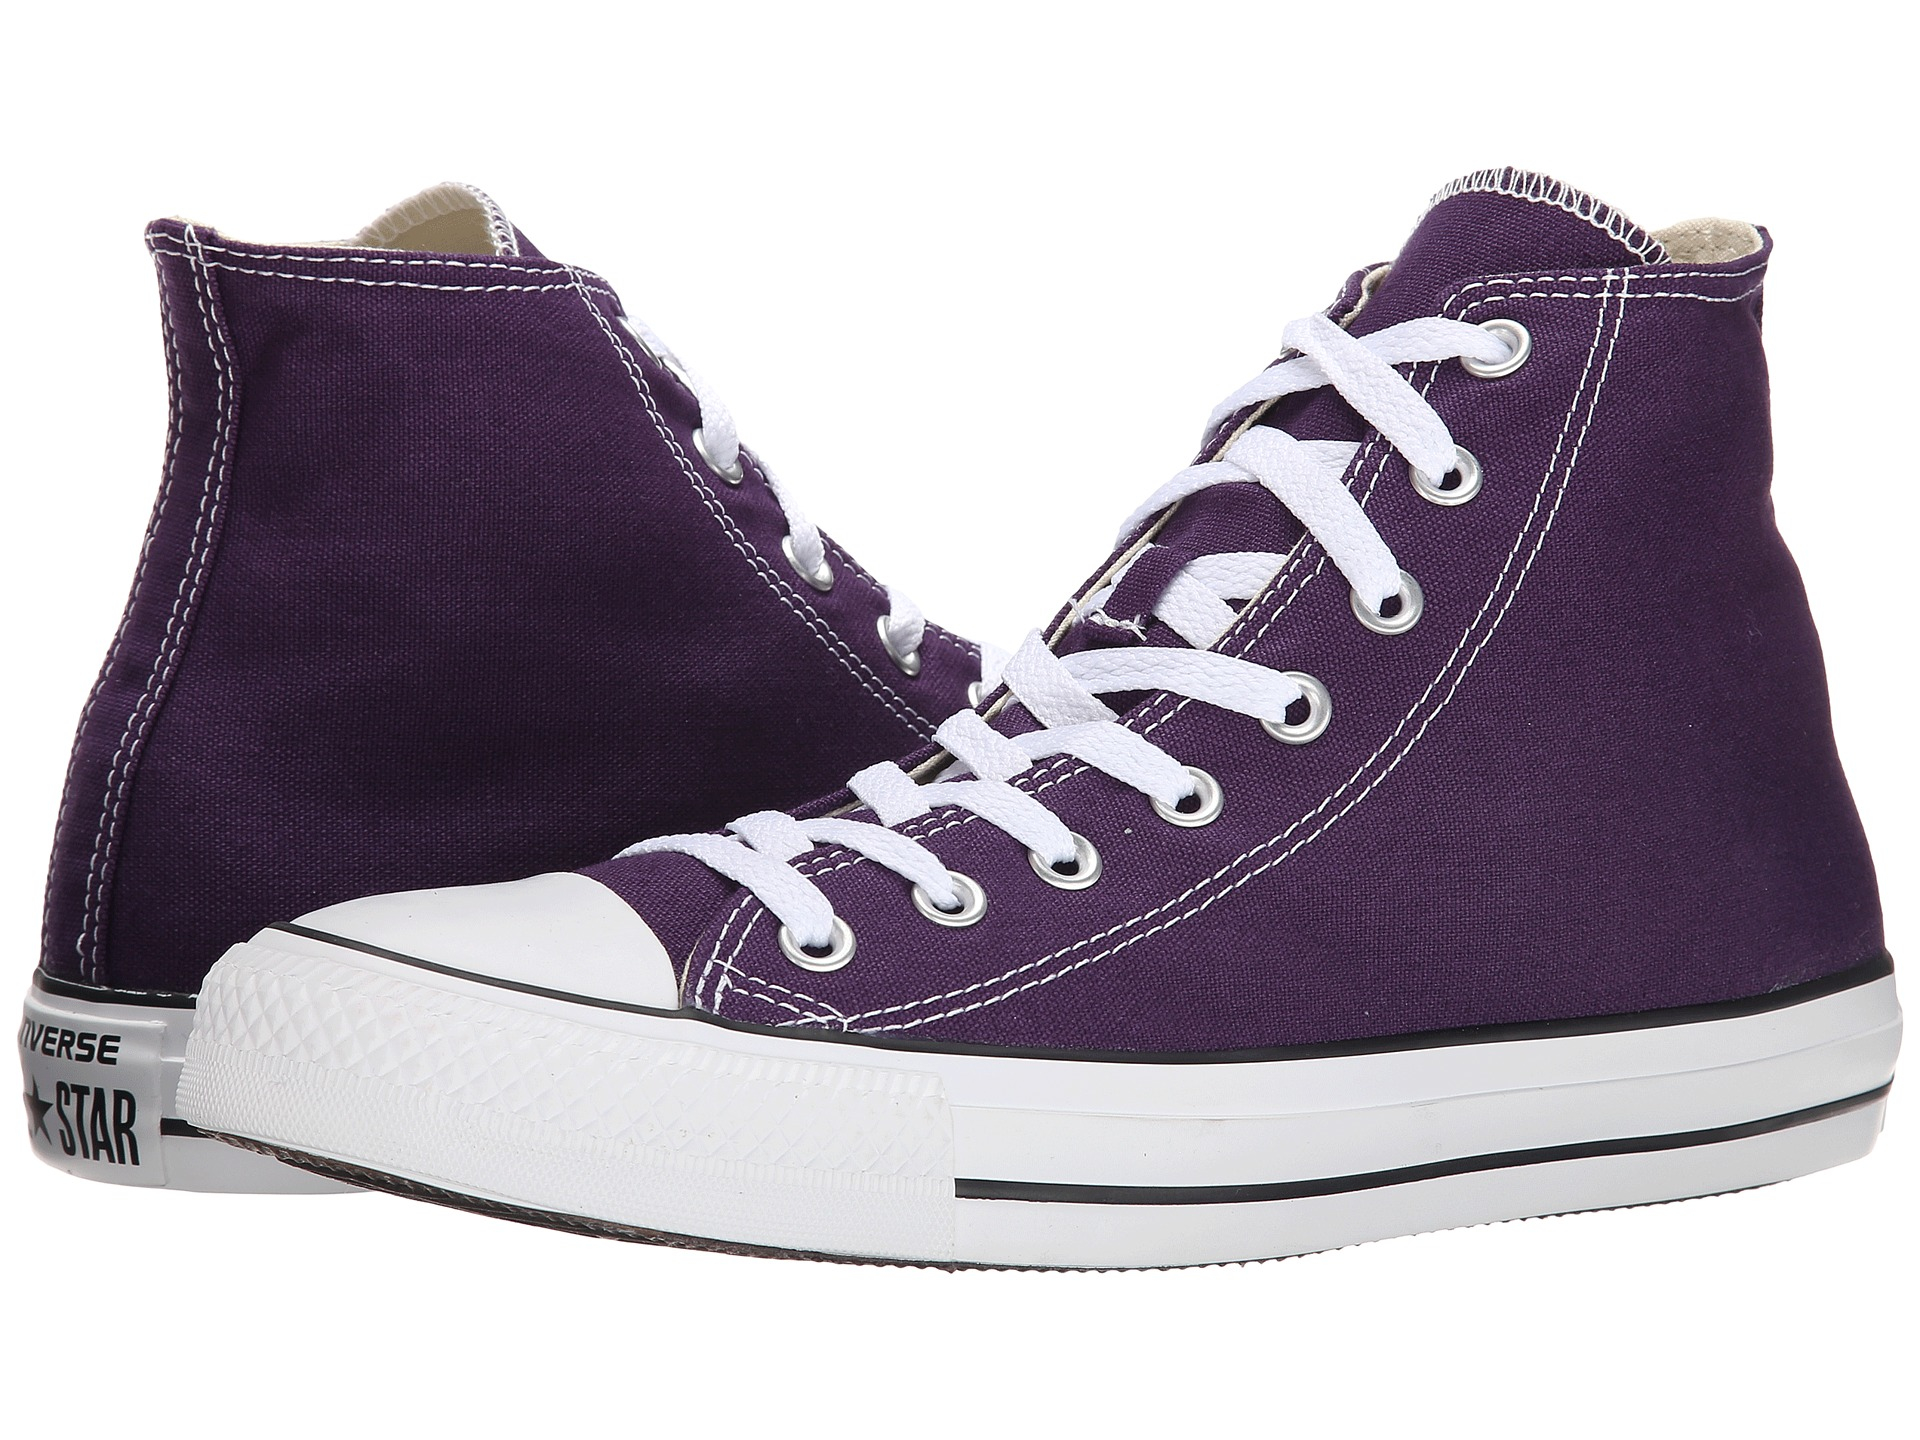 be9b08ede02c94 ... inexpensive lyst converse chuck taylor all star seasonal hi in purple  for men e4712 aac7a